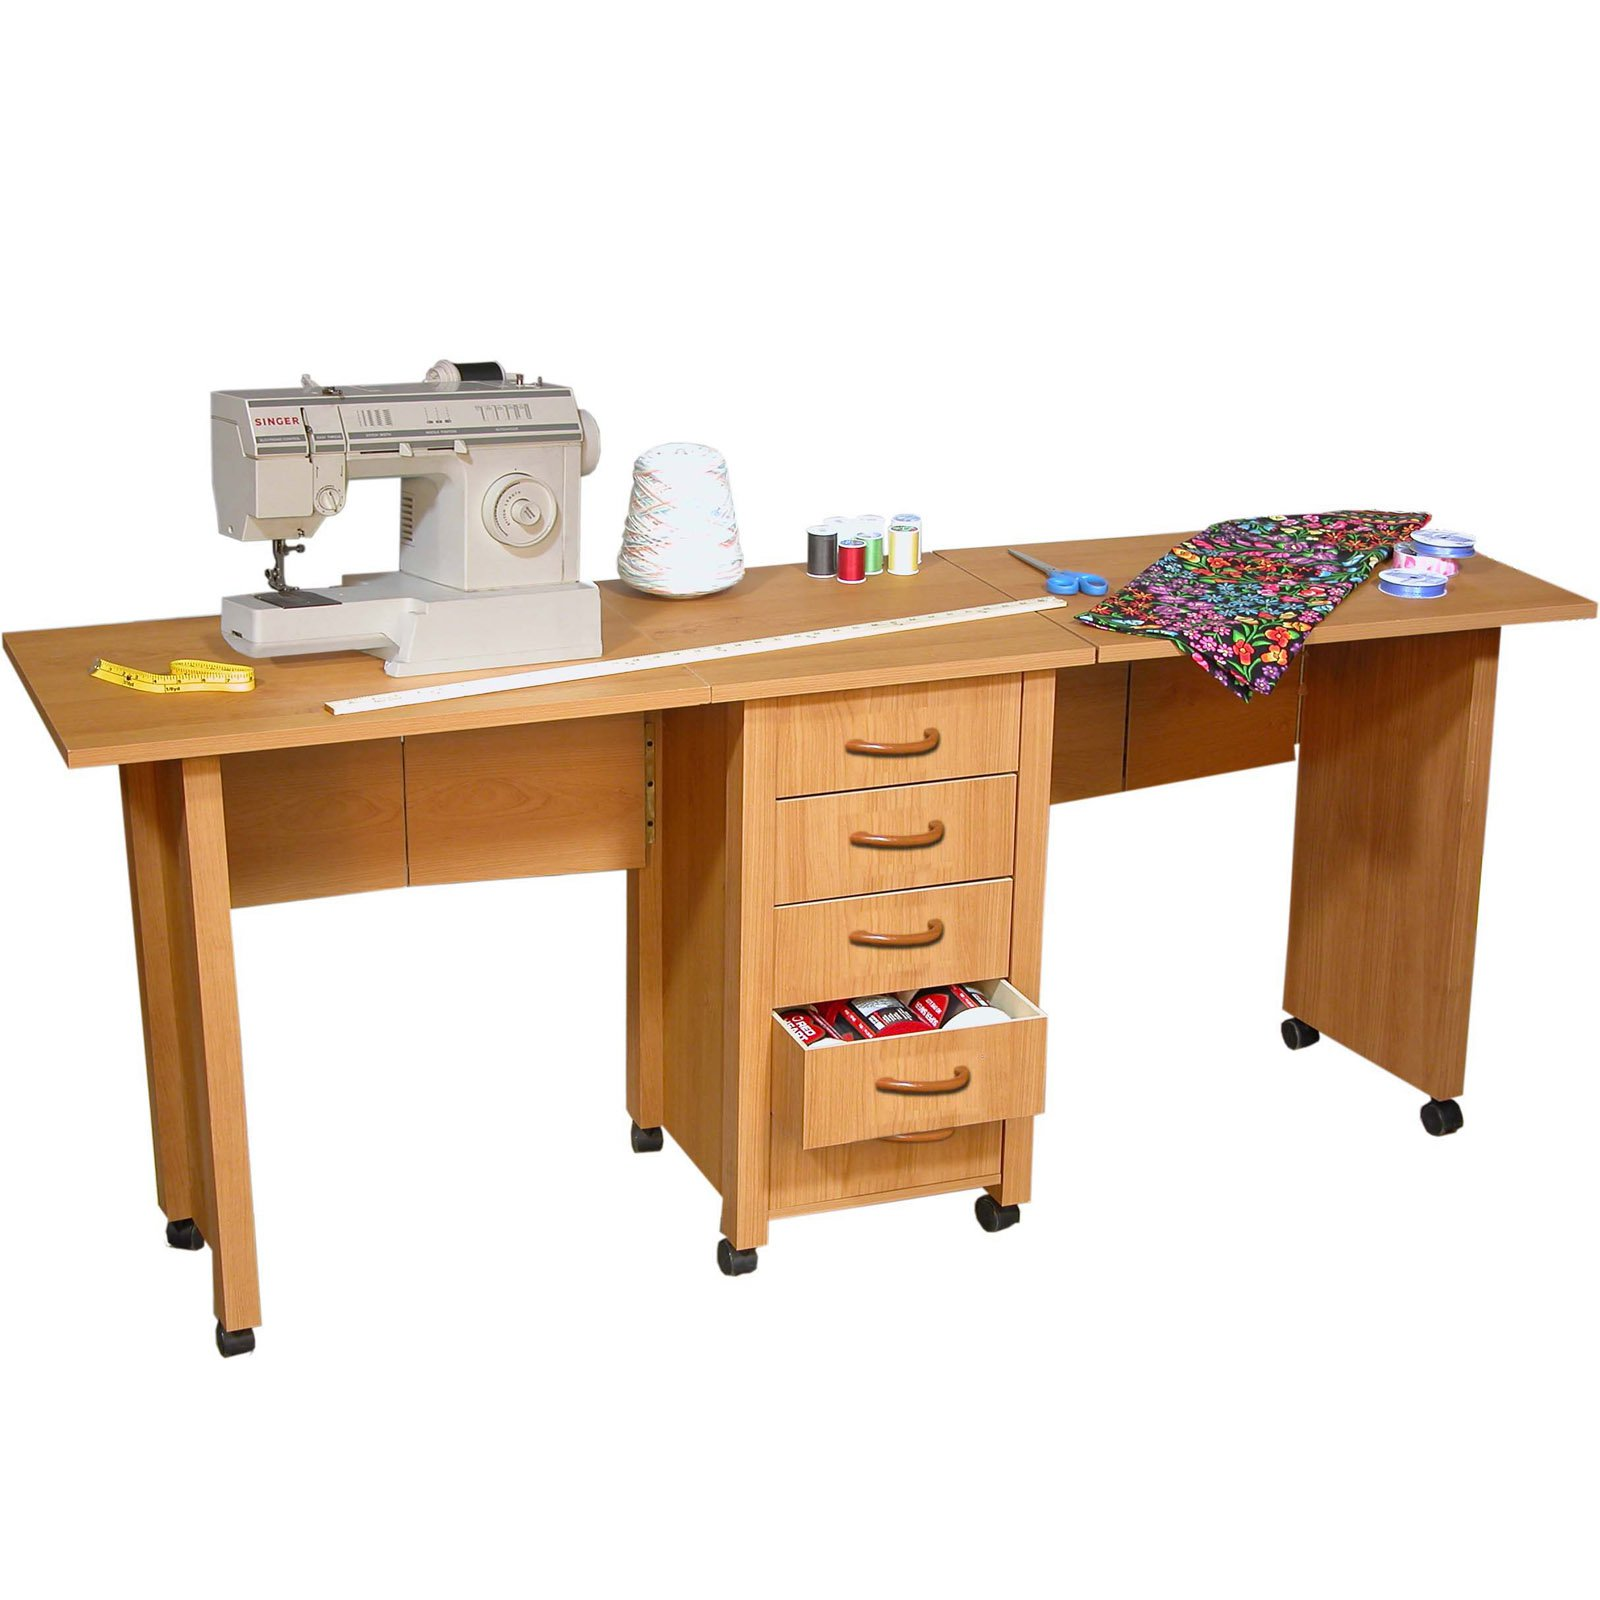 Venture Horizon Lamont Double Mobile Desk